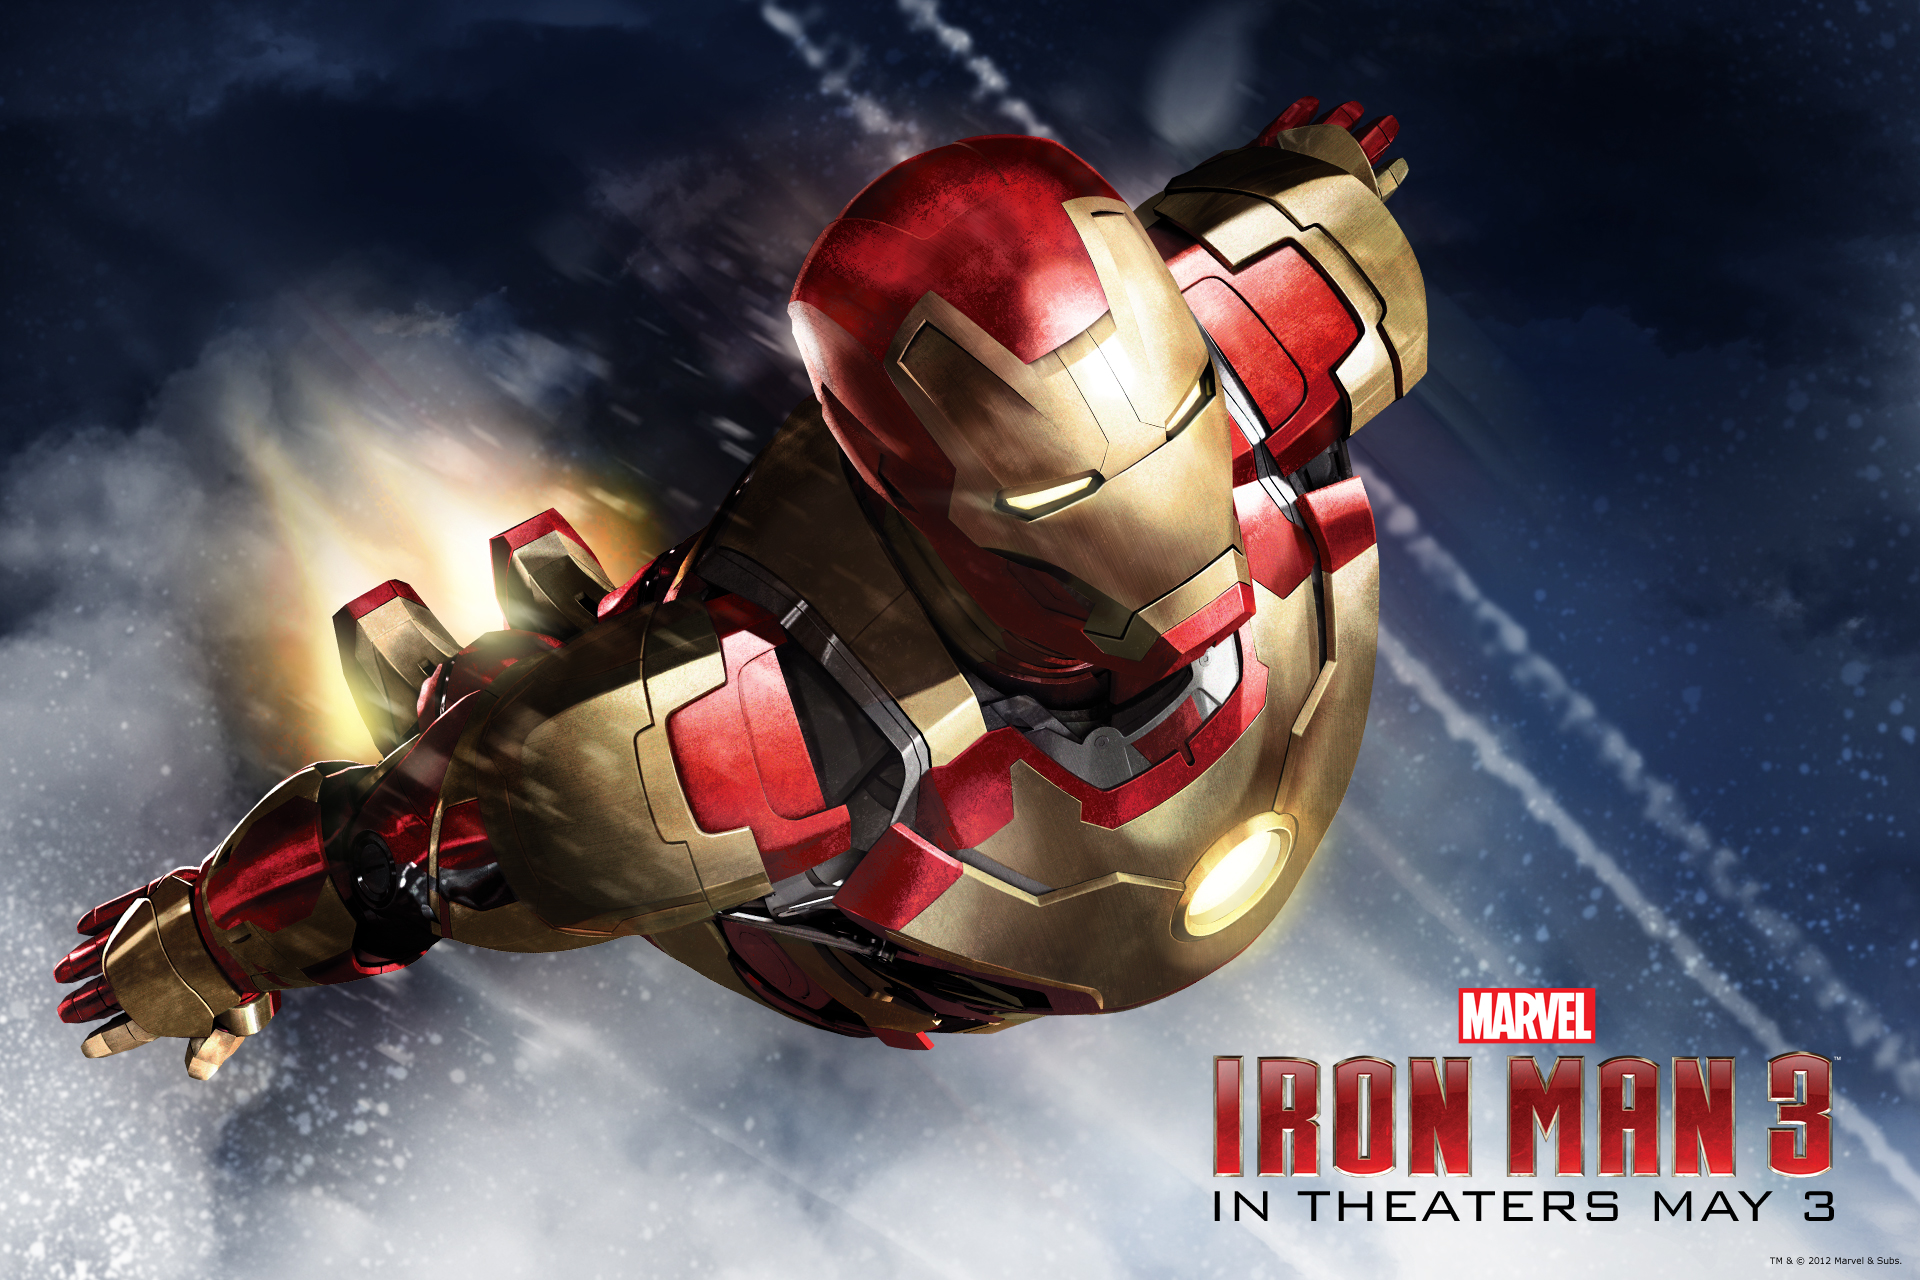 Iron Man 3 Flying 552344 Hd Wallpaper Backgrounds Download